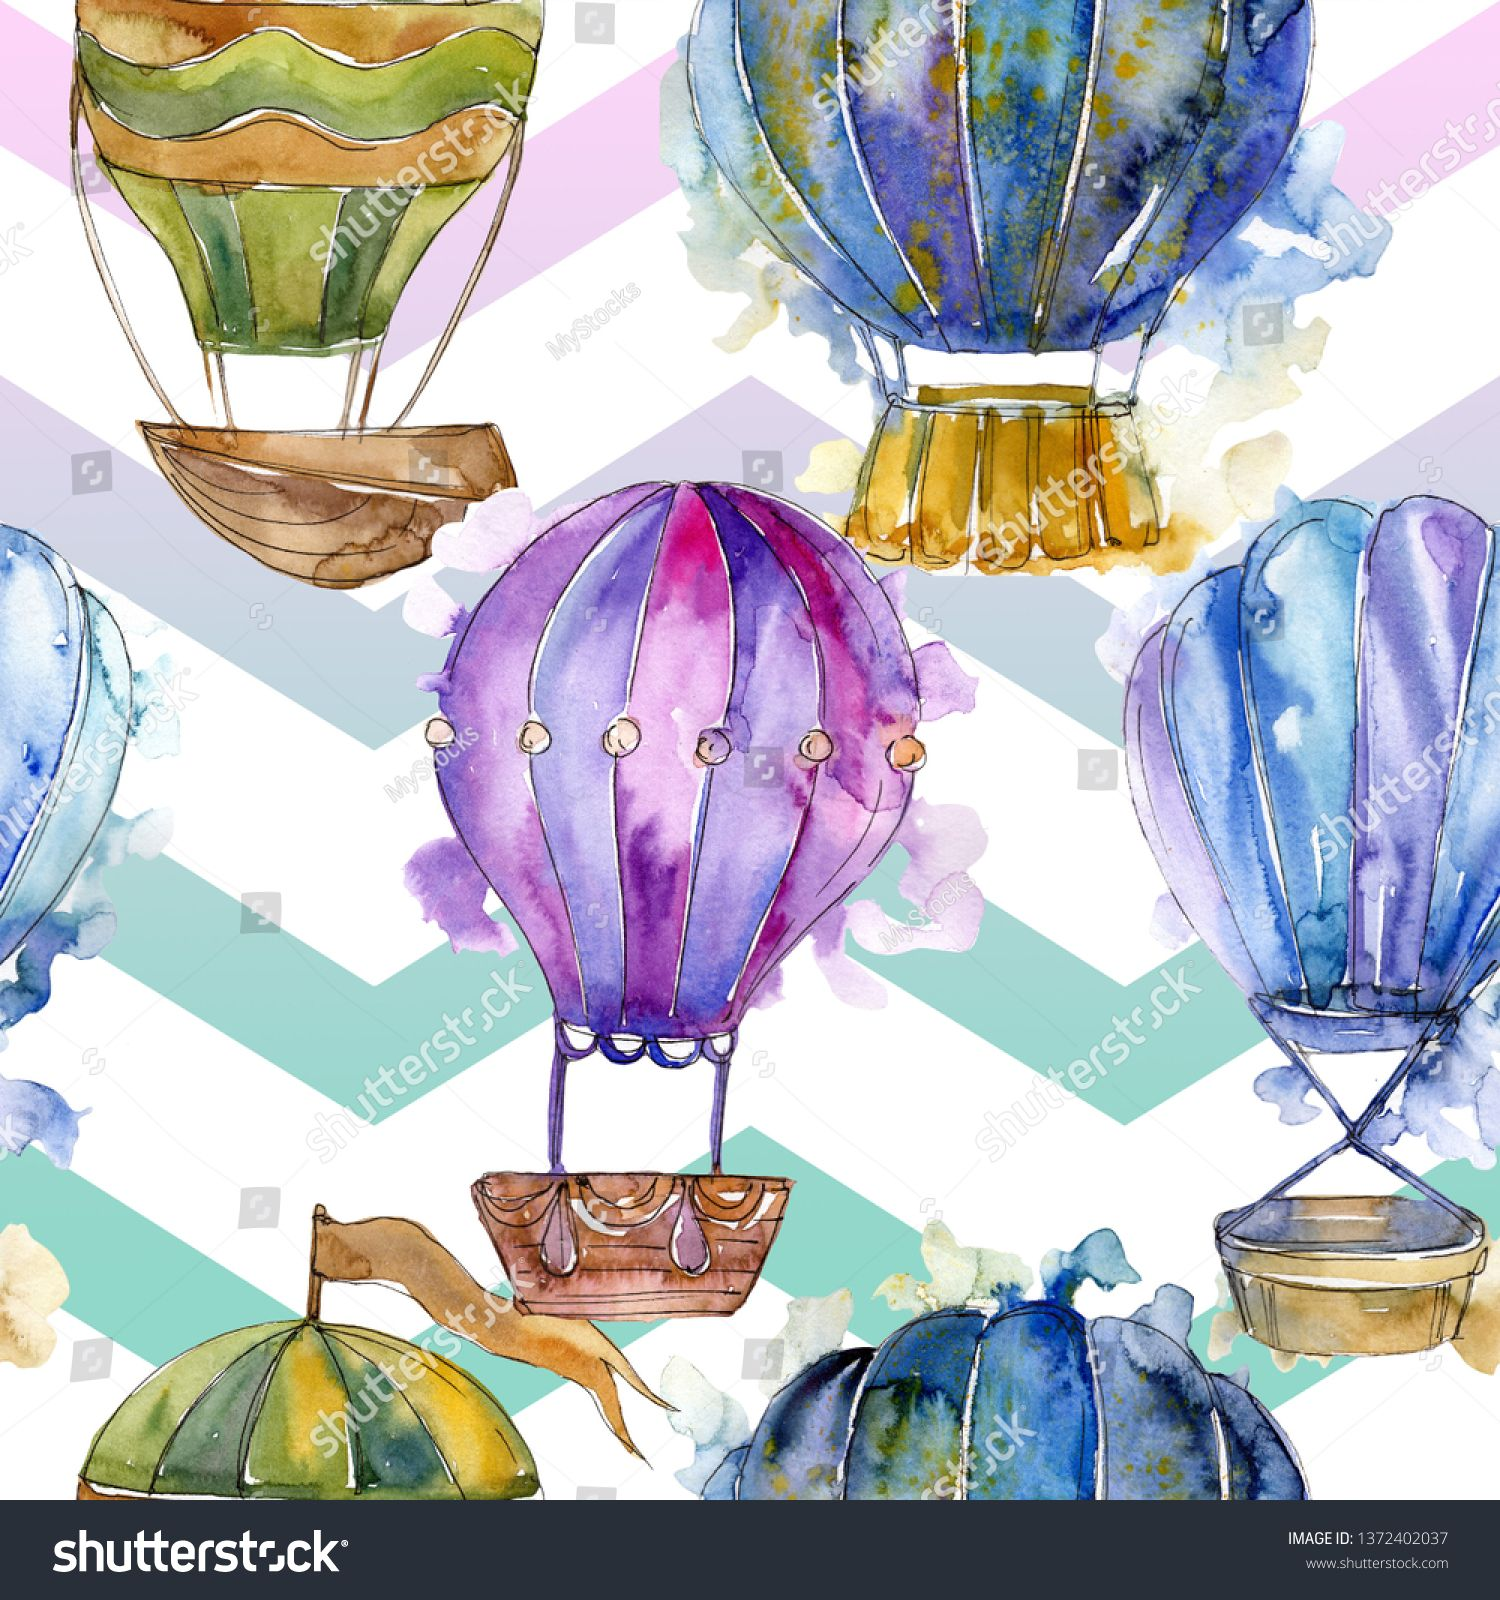 Hot air balloon background fly air transport illustration. Watercolor background set. Watercolour drawing fashion aquarelle isolated. Seamless background pattern. Fabric wallpaper print texture. #Sponsored , #Affiliate, #illustration#transport#Watercolor#Watercolour